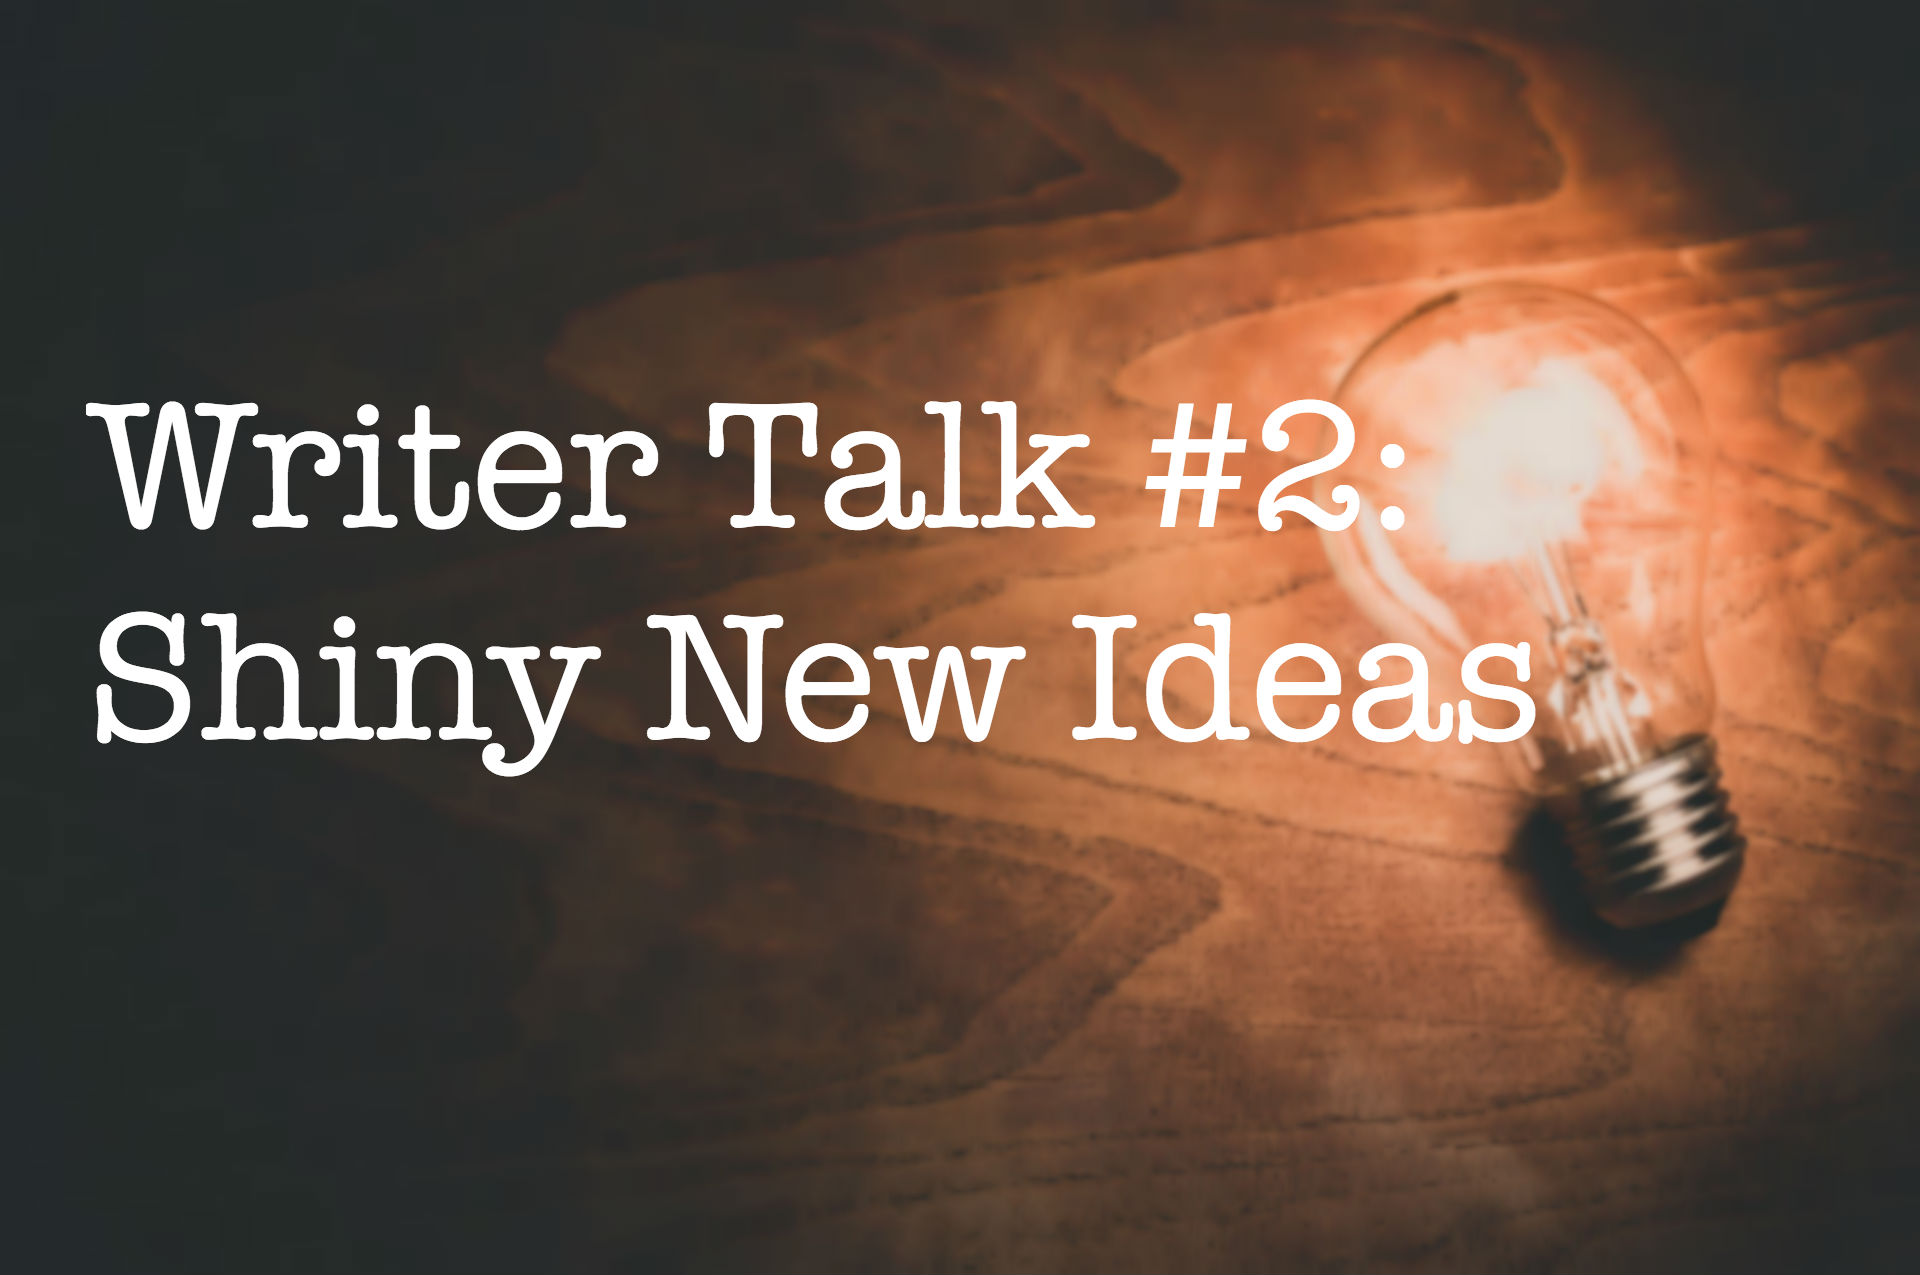 Writer Talk #2: Shiny New Ideas